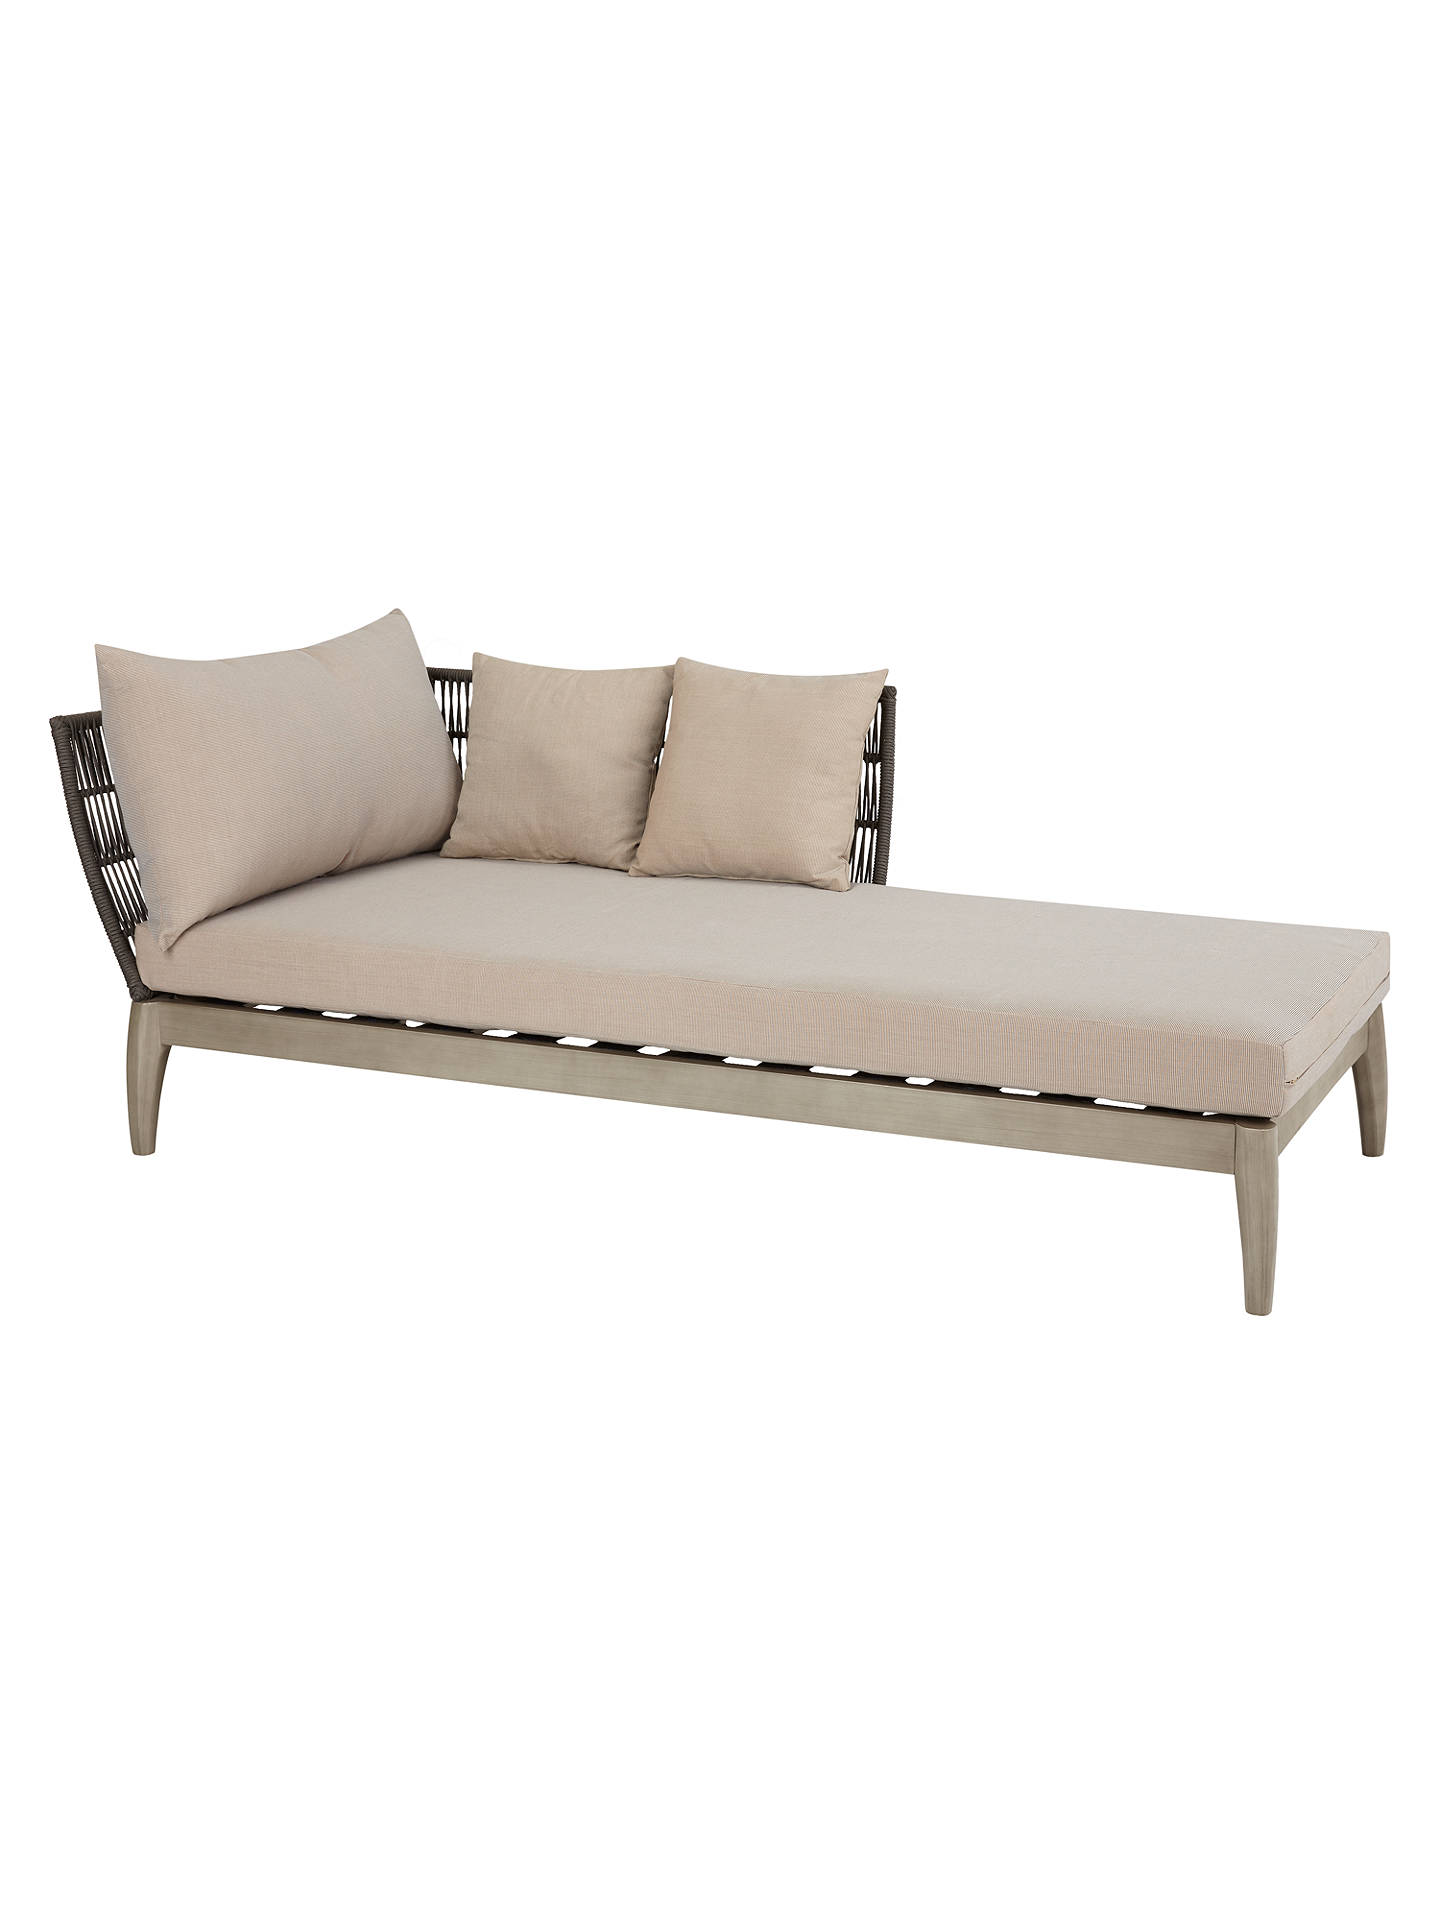 Merveilleux BuyJohn Lewis Ariel Garden Chaise Lounging Chair Online At Johnlewis.com ...